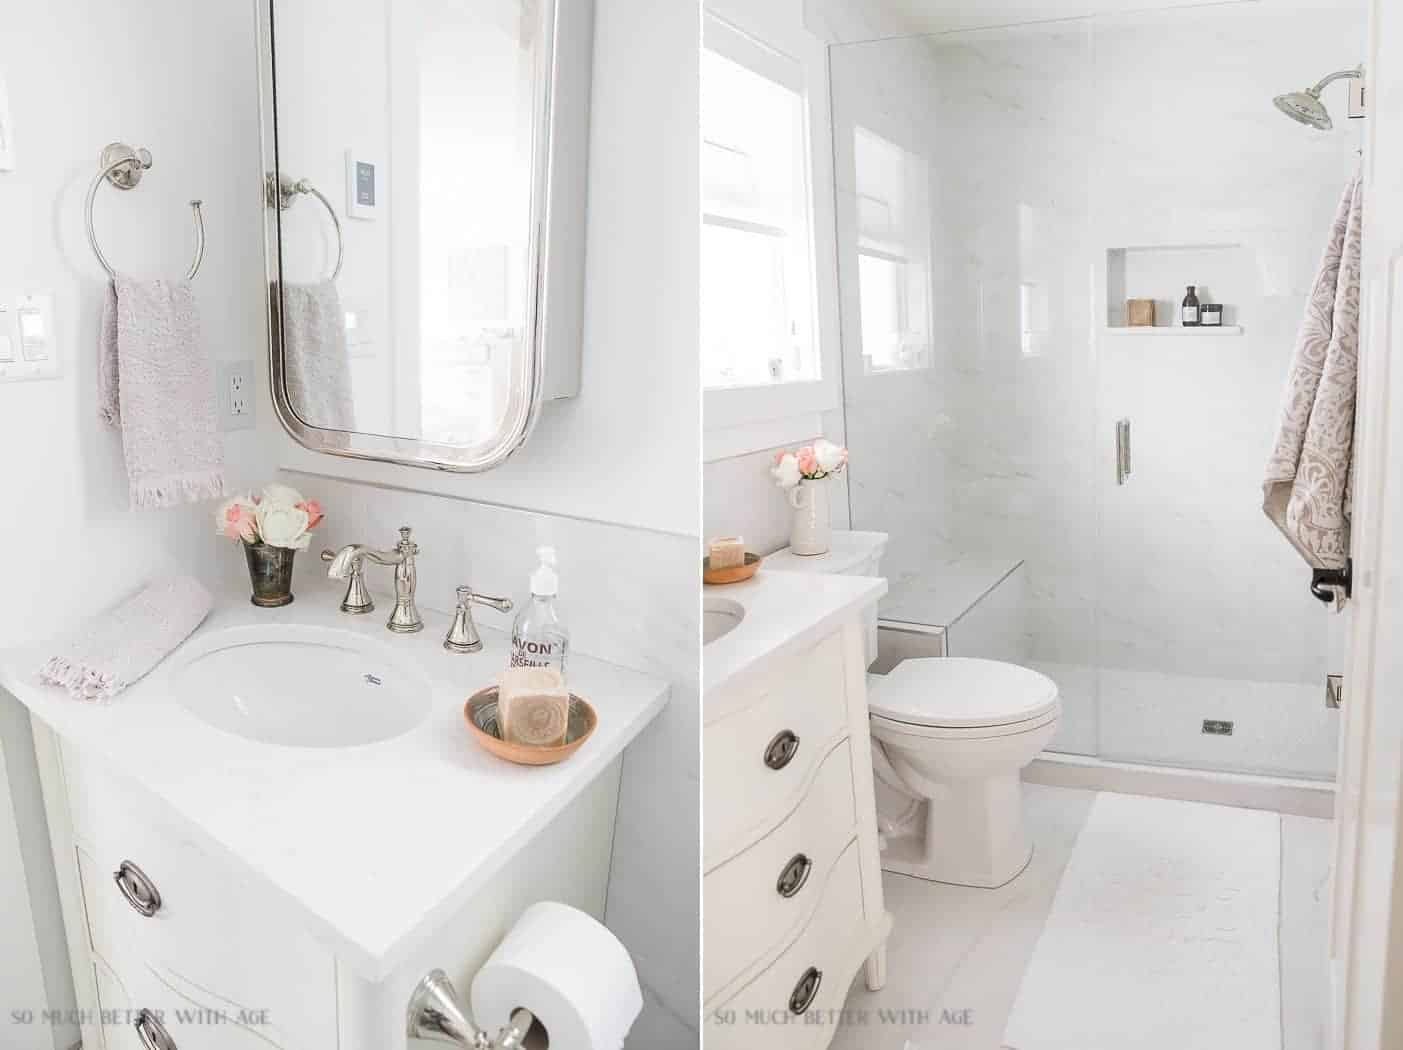 factors-that-dictate-the-remodeling-cost-5576229